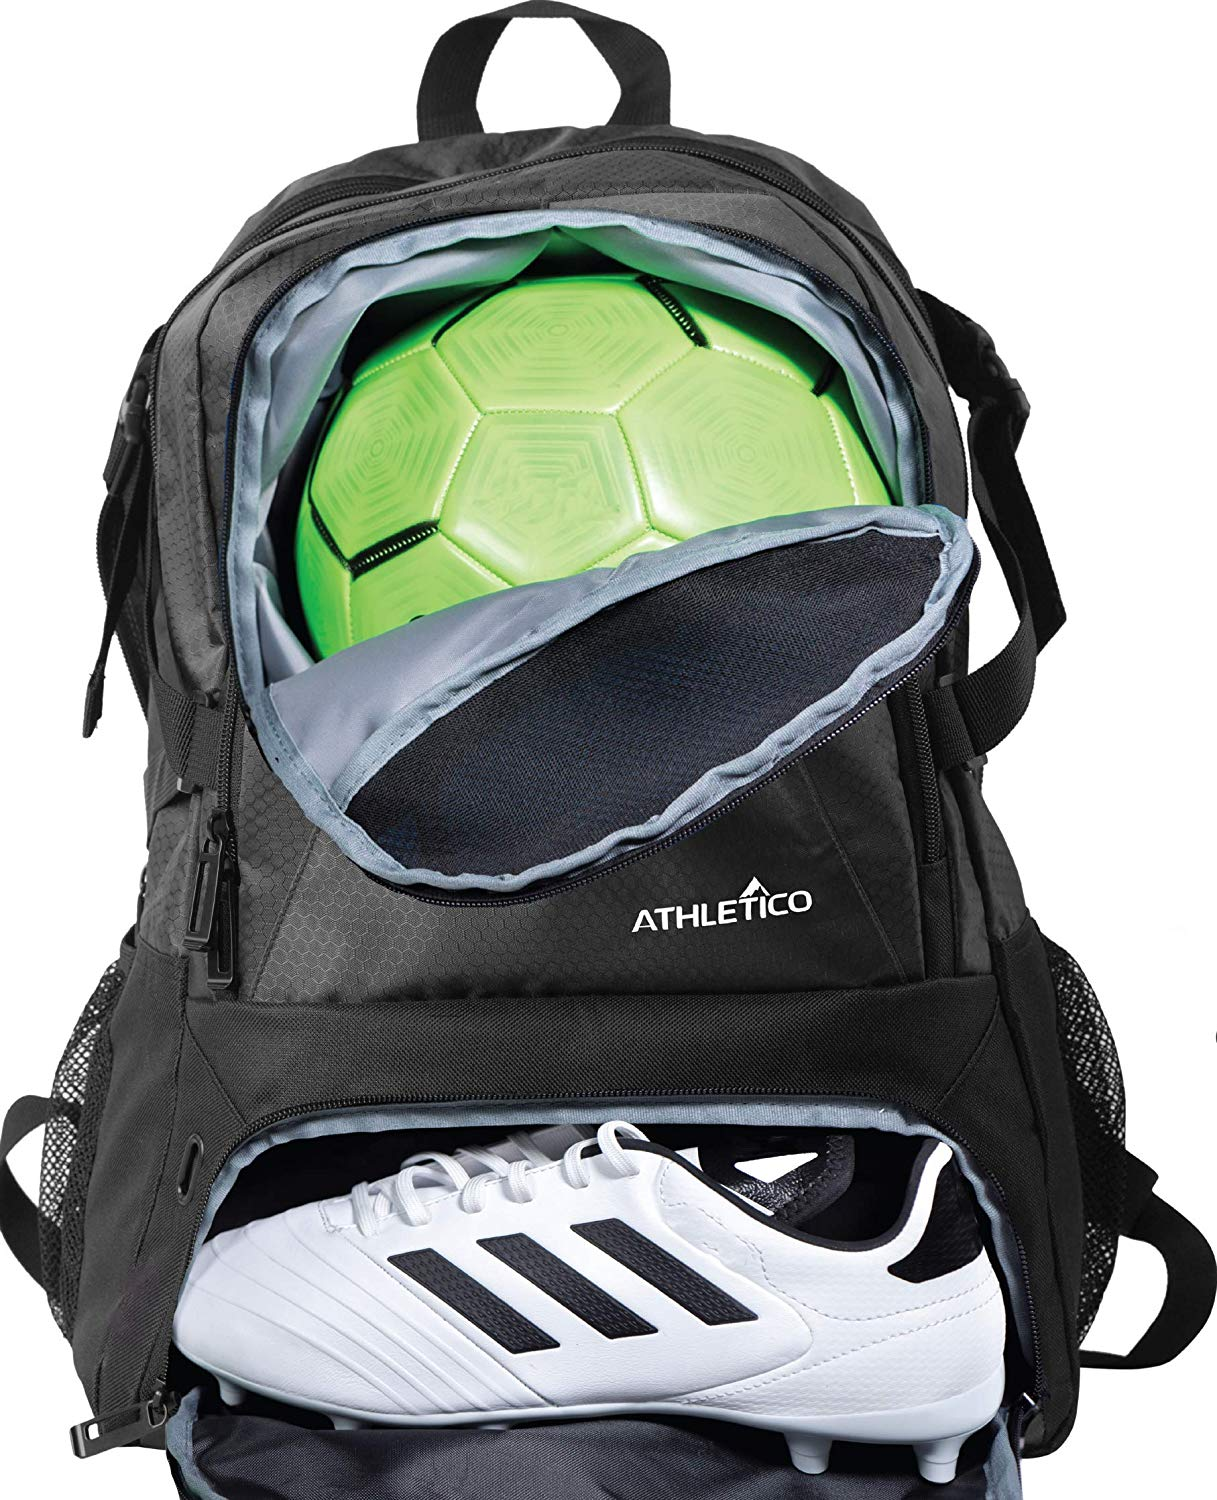 Athletico National Soccer Bag- Backpack for Soccer, Basketball & Football includes Separate Cleat and Ball Holder